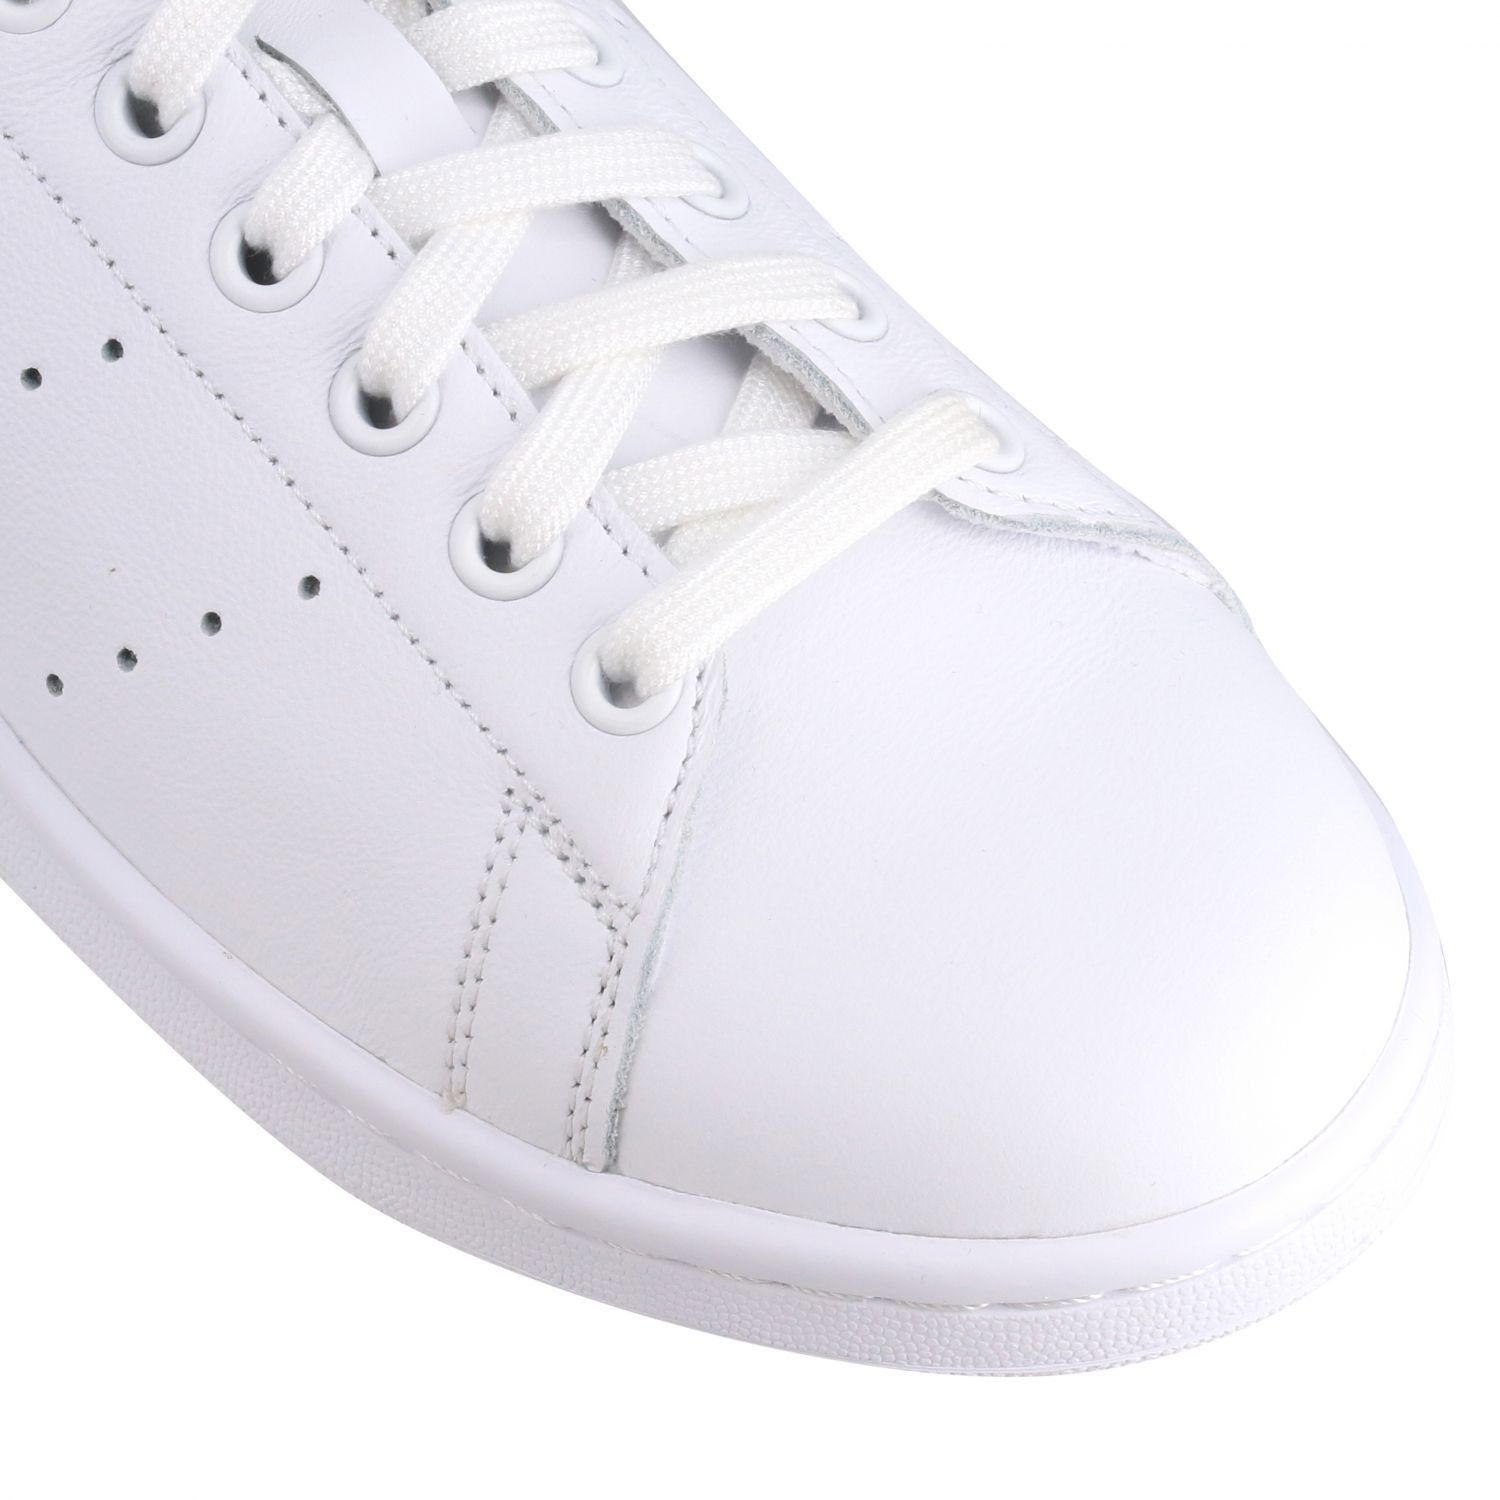 Sneakers Adidas Originals: Stan smith sneakers pelle tallone giallo ricamo bianco 4